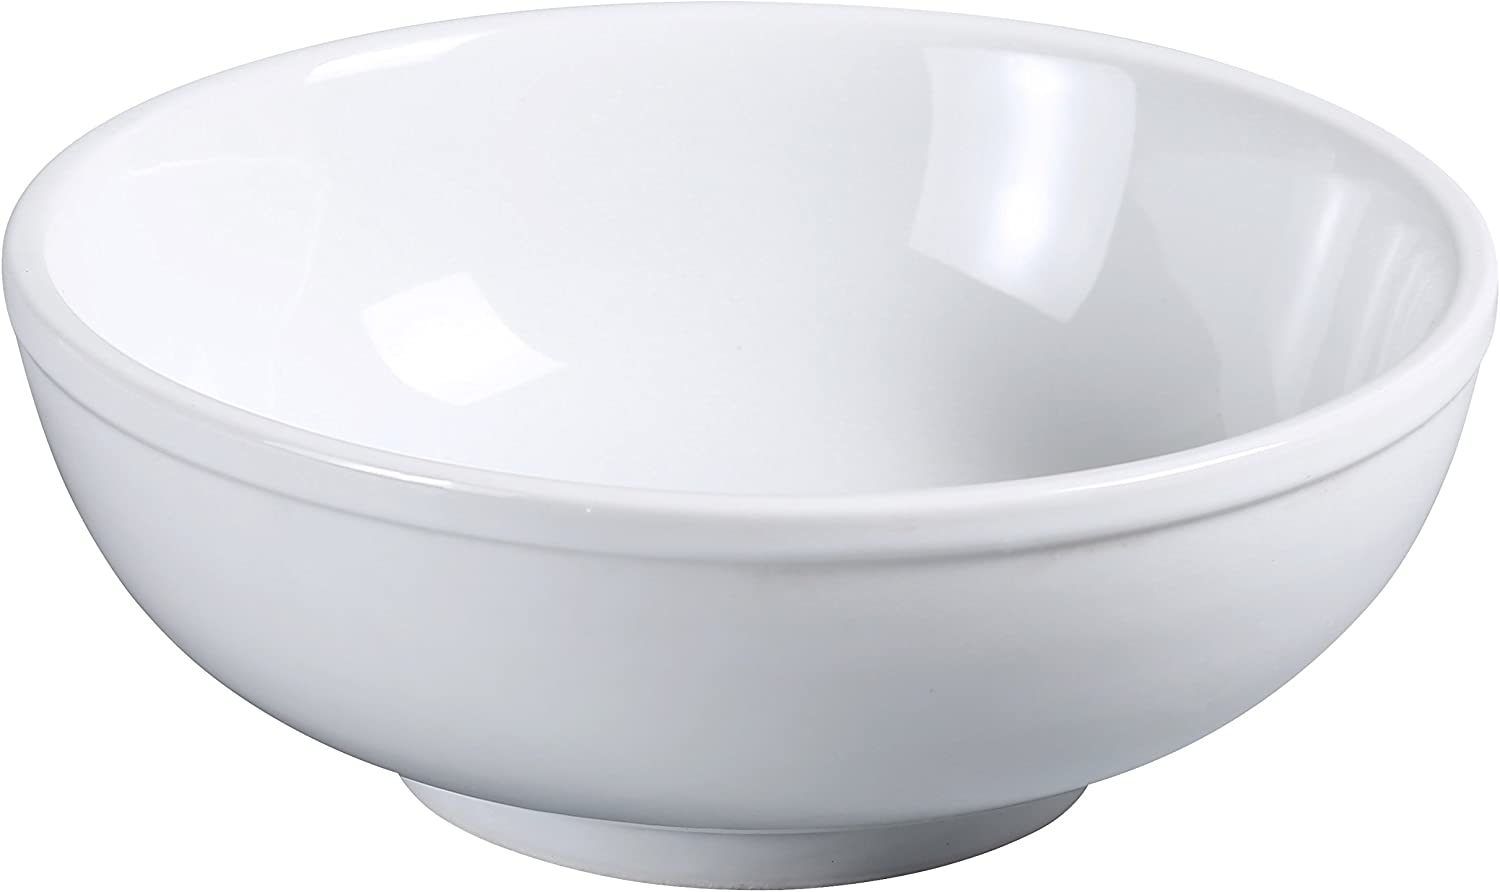 Yanco AC-8-M ABCO 8.5  Menudo Bowl, 48 oz, Porcelain, Super White, Pack of 24